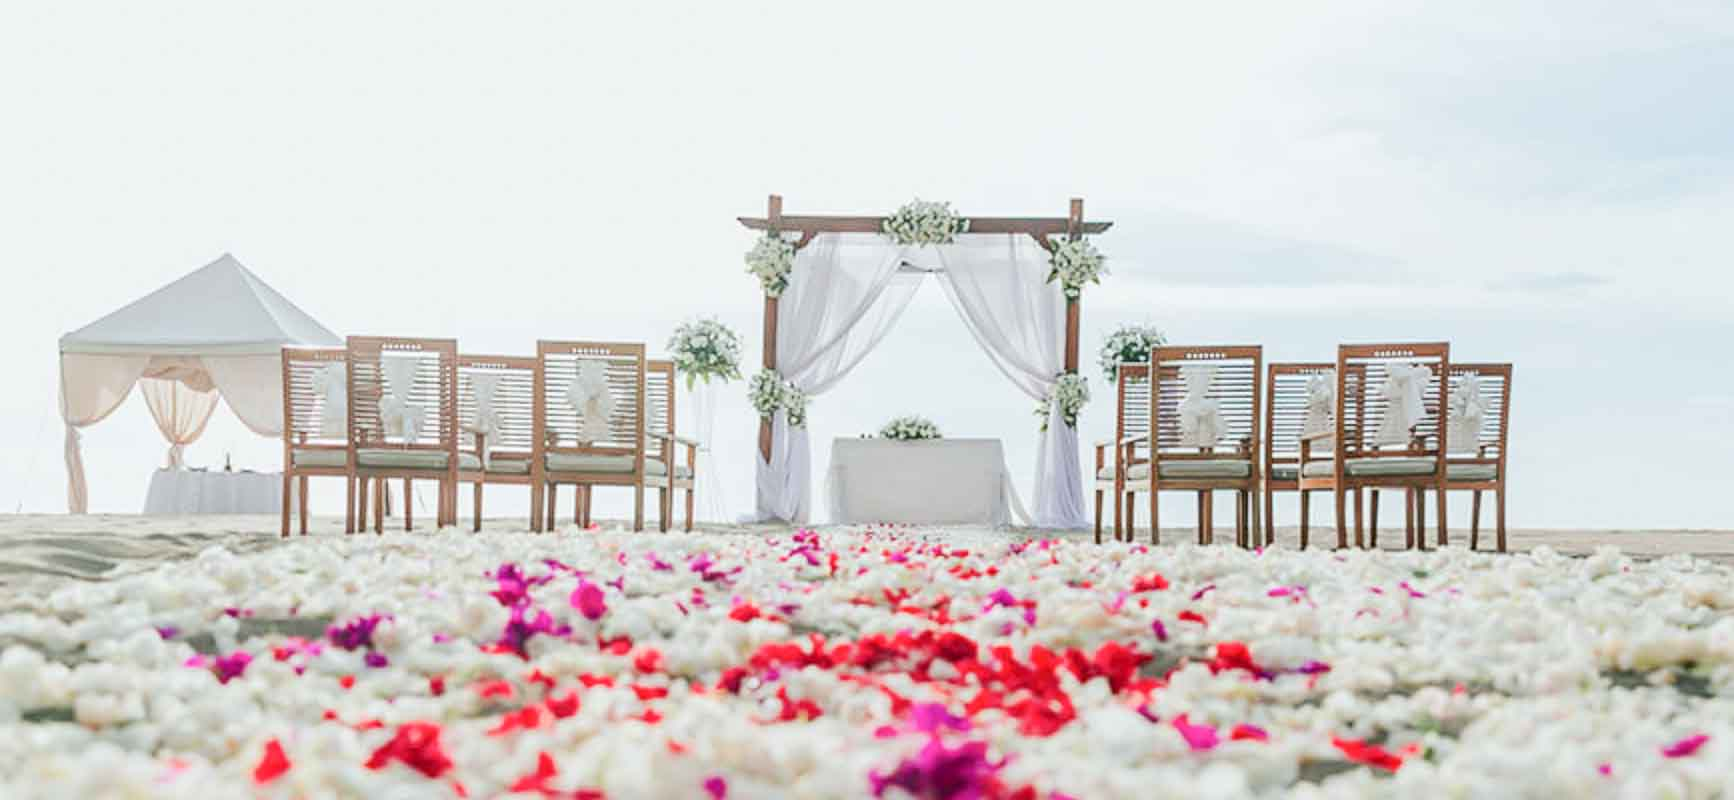 Ma Joly Sunset Beach Wedding Venue (30 - 100 Pax) Inclusive of Photograph & Videography + Makeup & Hair + Decorations-8